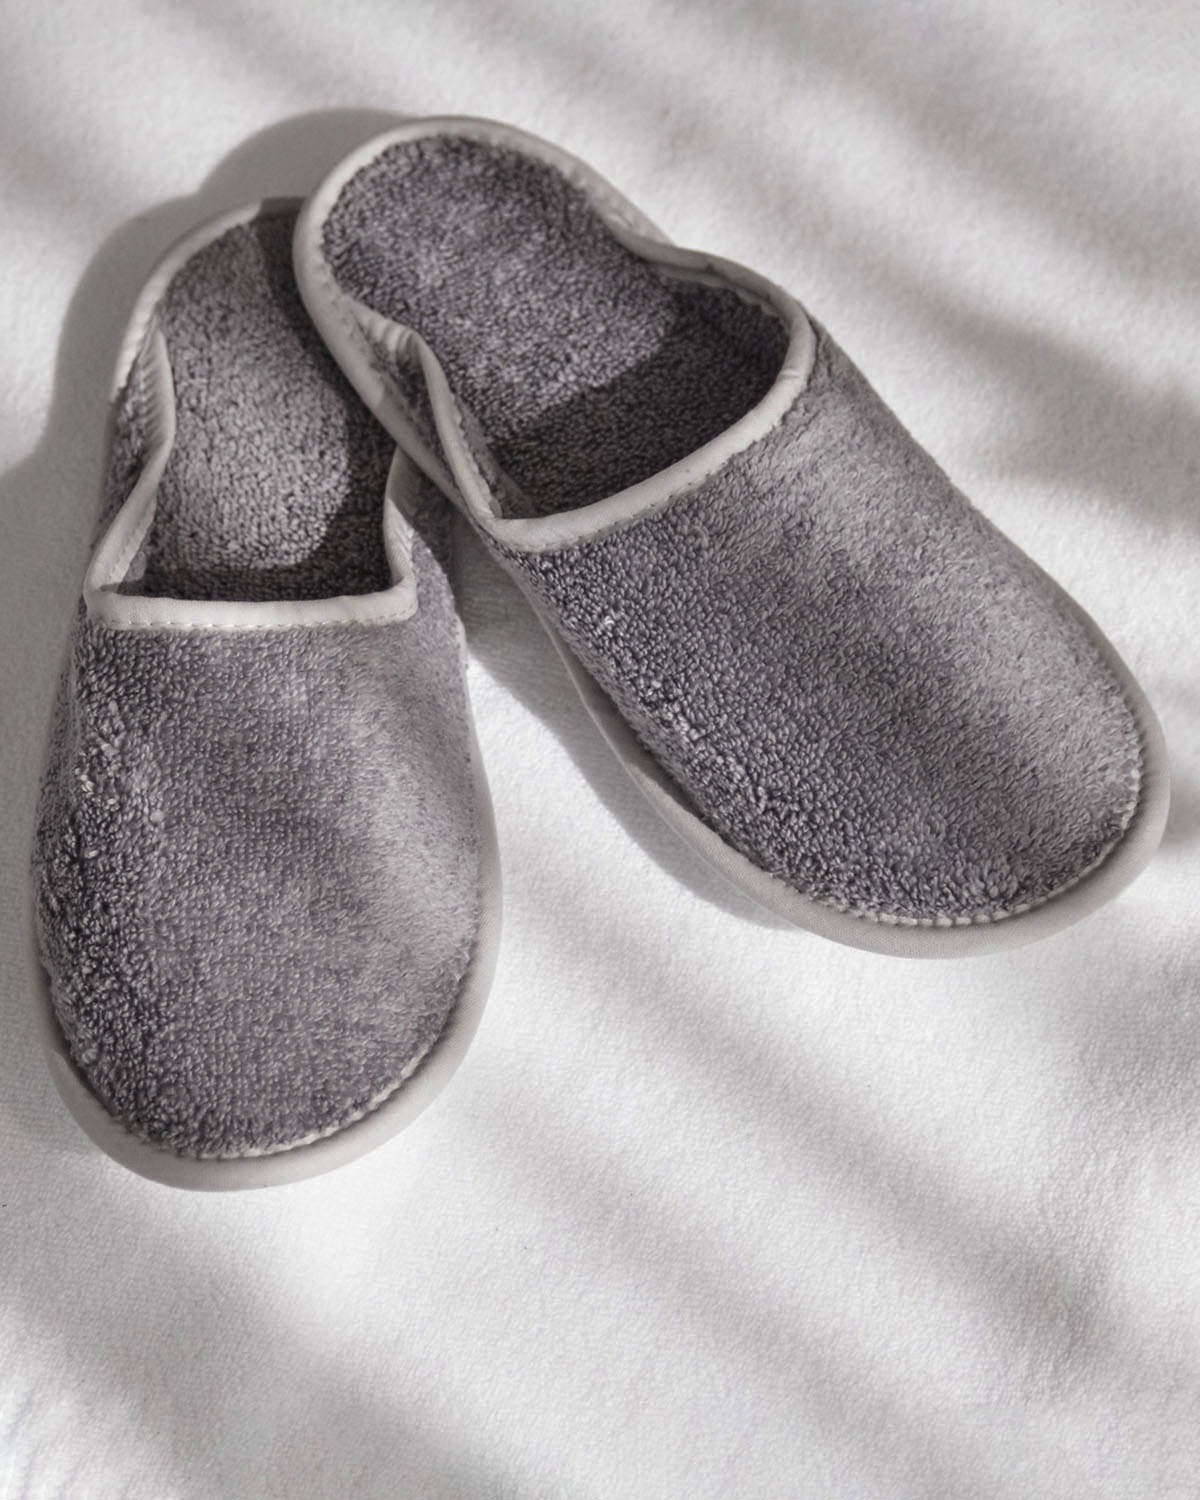 Baby Hotel Slippers Francis Brennan The Collection Luxury Terry Hotel Slippers